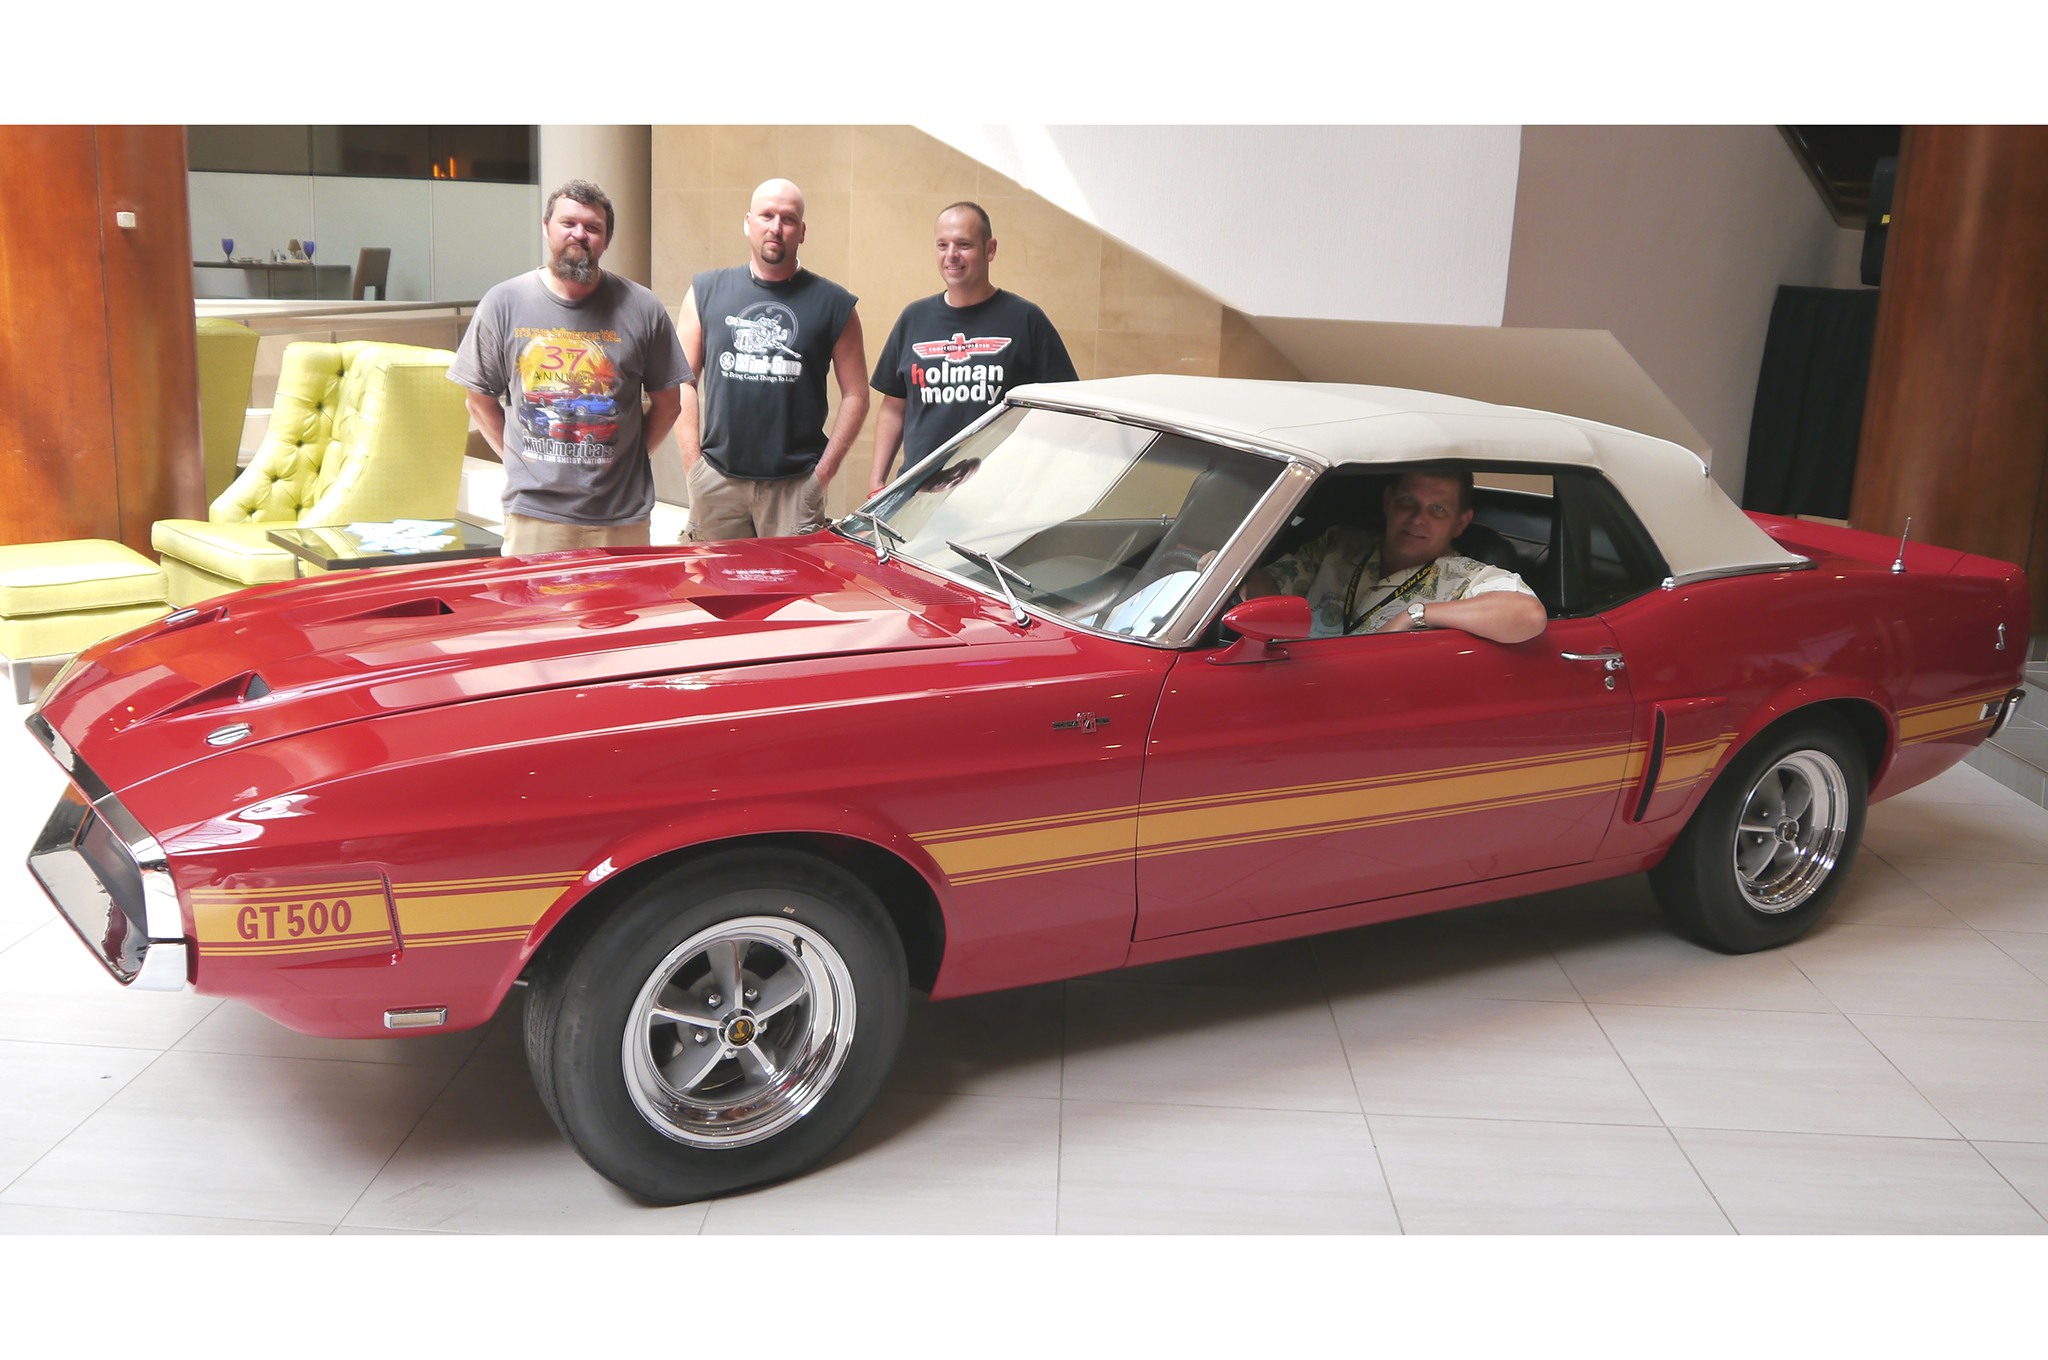 "Owner Michael Smith is behind the wheel of his 1969 Gold Medal award-winning Shelby Mustang convertible, in the hotel lobby of the 39th annual Mid-America show in Tulsa, Oklahoma. ""Behind-the-scenes guys,"" from left to right, are Casey Kelly, Lonnie Baker, and Jason Billups—members of the Billups Classic Cars team."